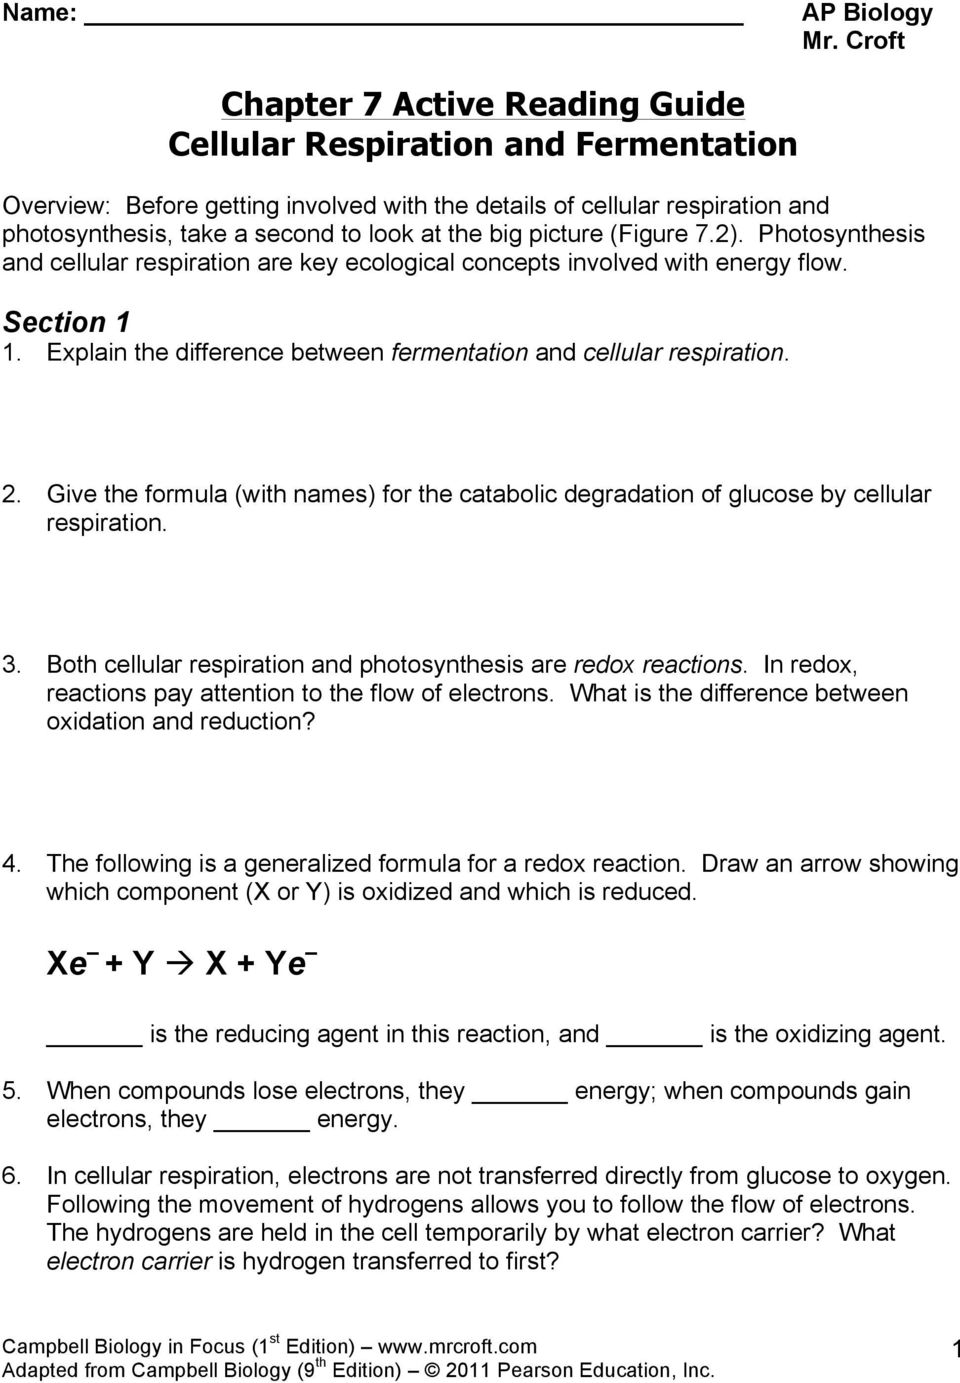 Chapter 7 Active Reading Guide Cellular Respiration and – Photosynthesis and Cellular Respiration Worksheet Answers